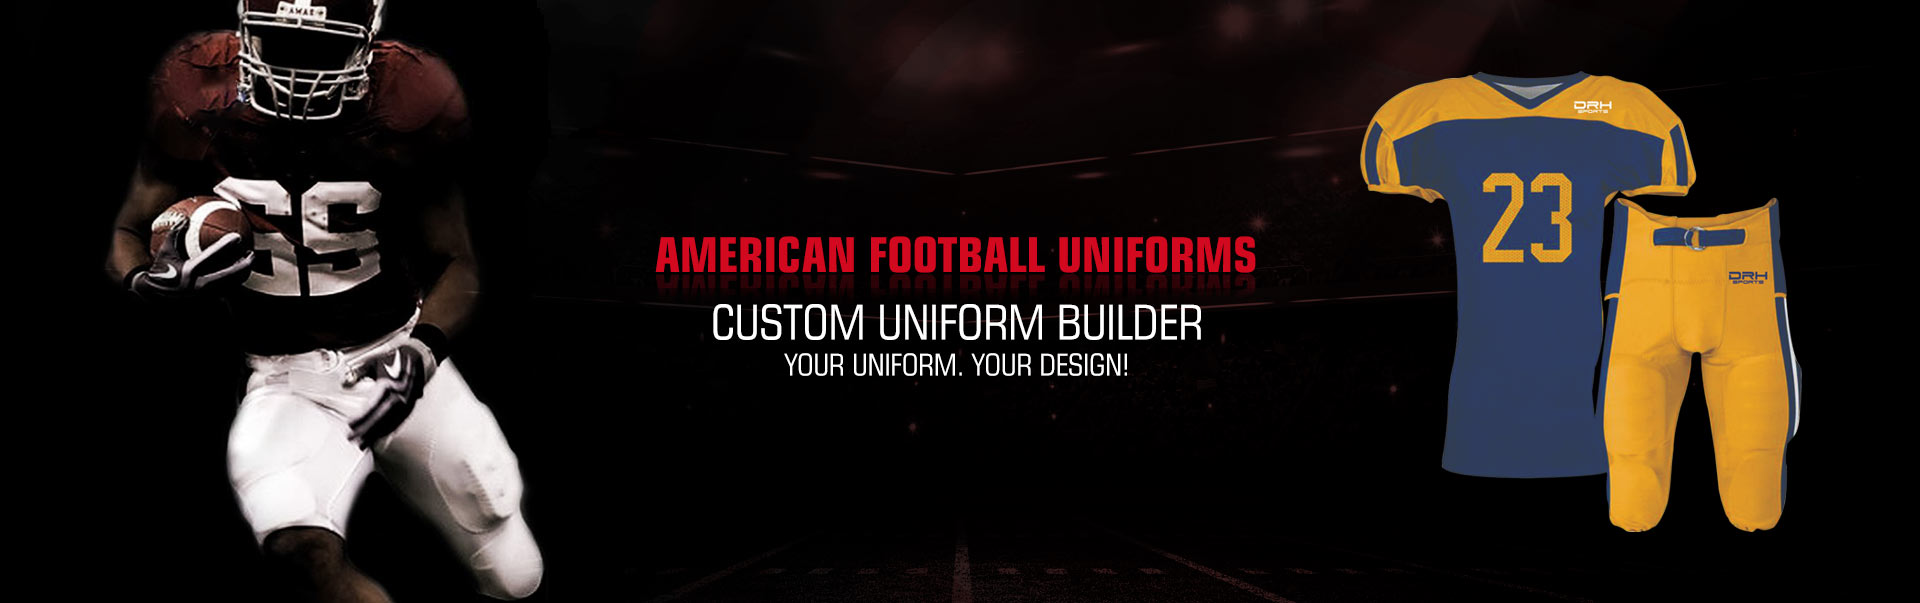 American Football Uniform Wholesaler, Suppliers in Senneterre